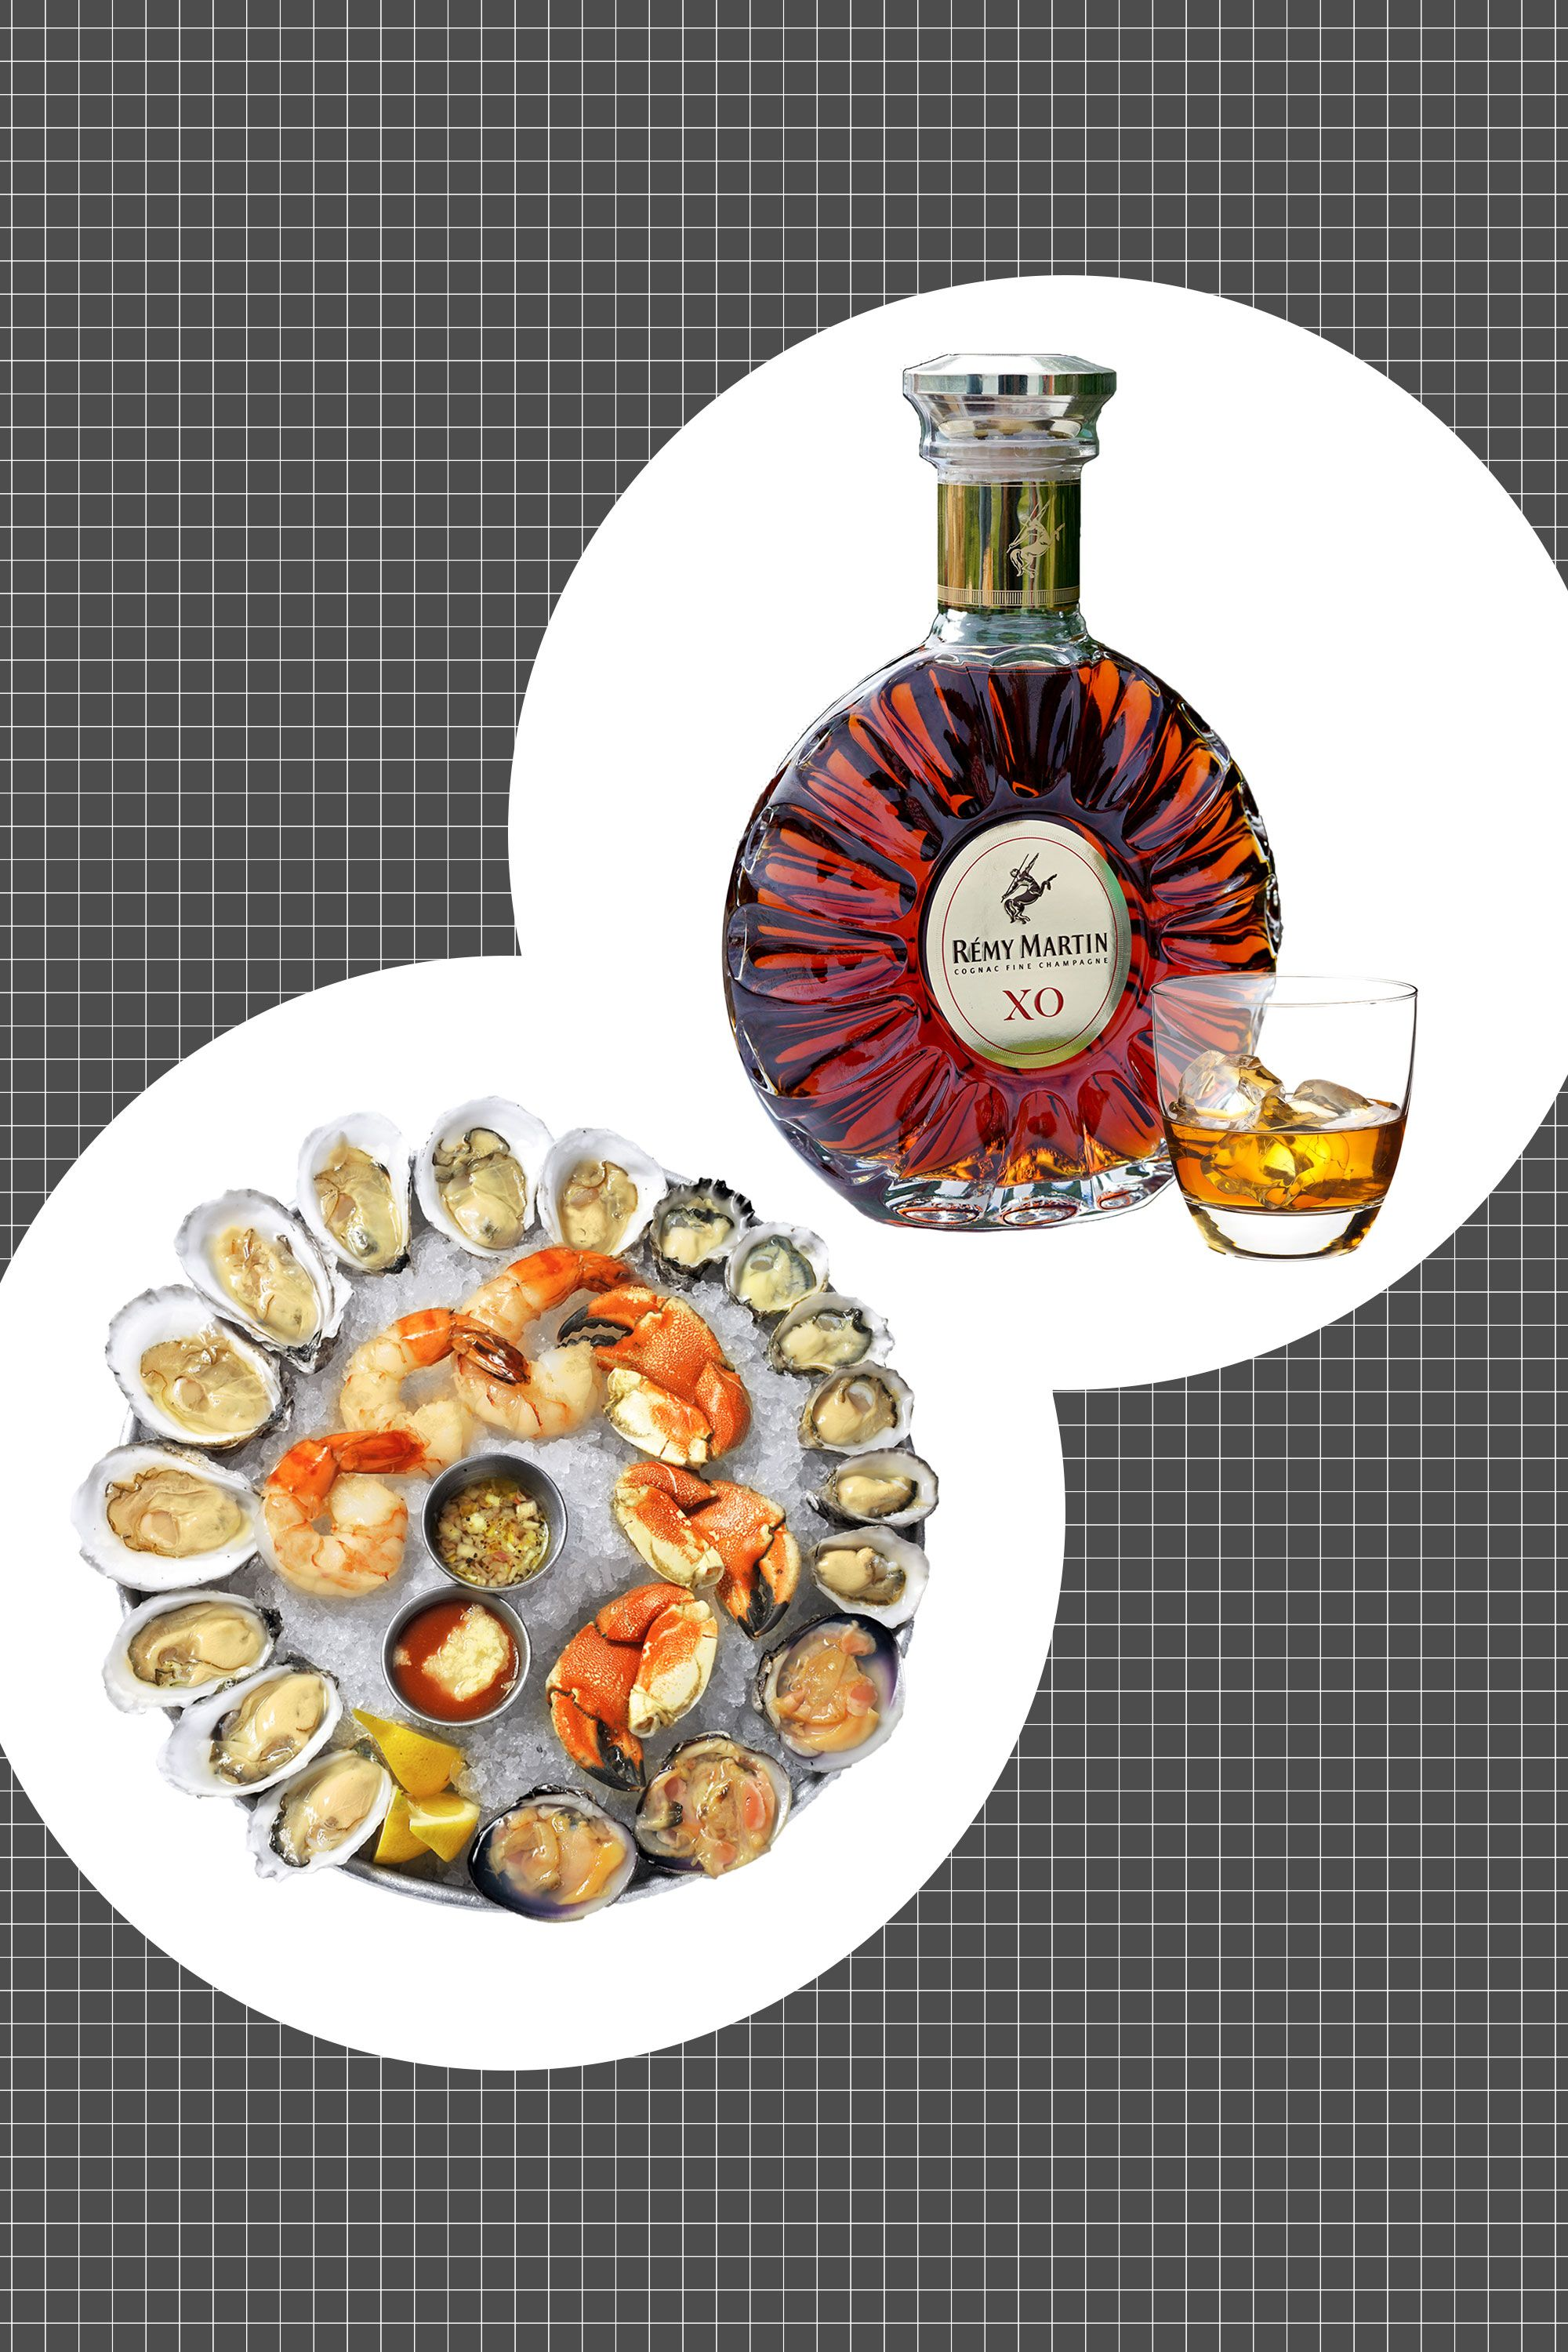 "<p>It isn't simply because the opulent tray of chilled shellfish and raw seafood echoes nicely with the layers of flavor and luxury of cognac—though it does. Rather, it's that the salinity and oceanic quality of shellfish like oysters and lobster claws finds a smooth and summer-fruited companion in cognac, especially a fine cognac as rich and well-balanced as <a href=""http://www.remymartin.com/us/collection/xo/"">Remy Martin XO</a>. It's the ultimate surf-and-turf. </p><p> <strong data-redactor-tag=""strong"">How to serve:</strong> Neat, room temperature, and often.</p><p><span class=""redactor-invisible-space"" data-verified=""redactor"" data-redactor-tag=""span"" data-redactor-class=""redactor-invisible-space""></span><br></p>"